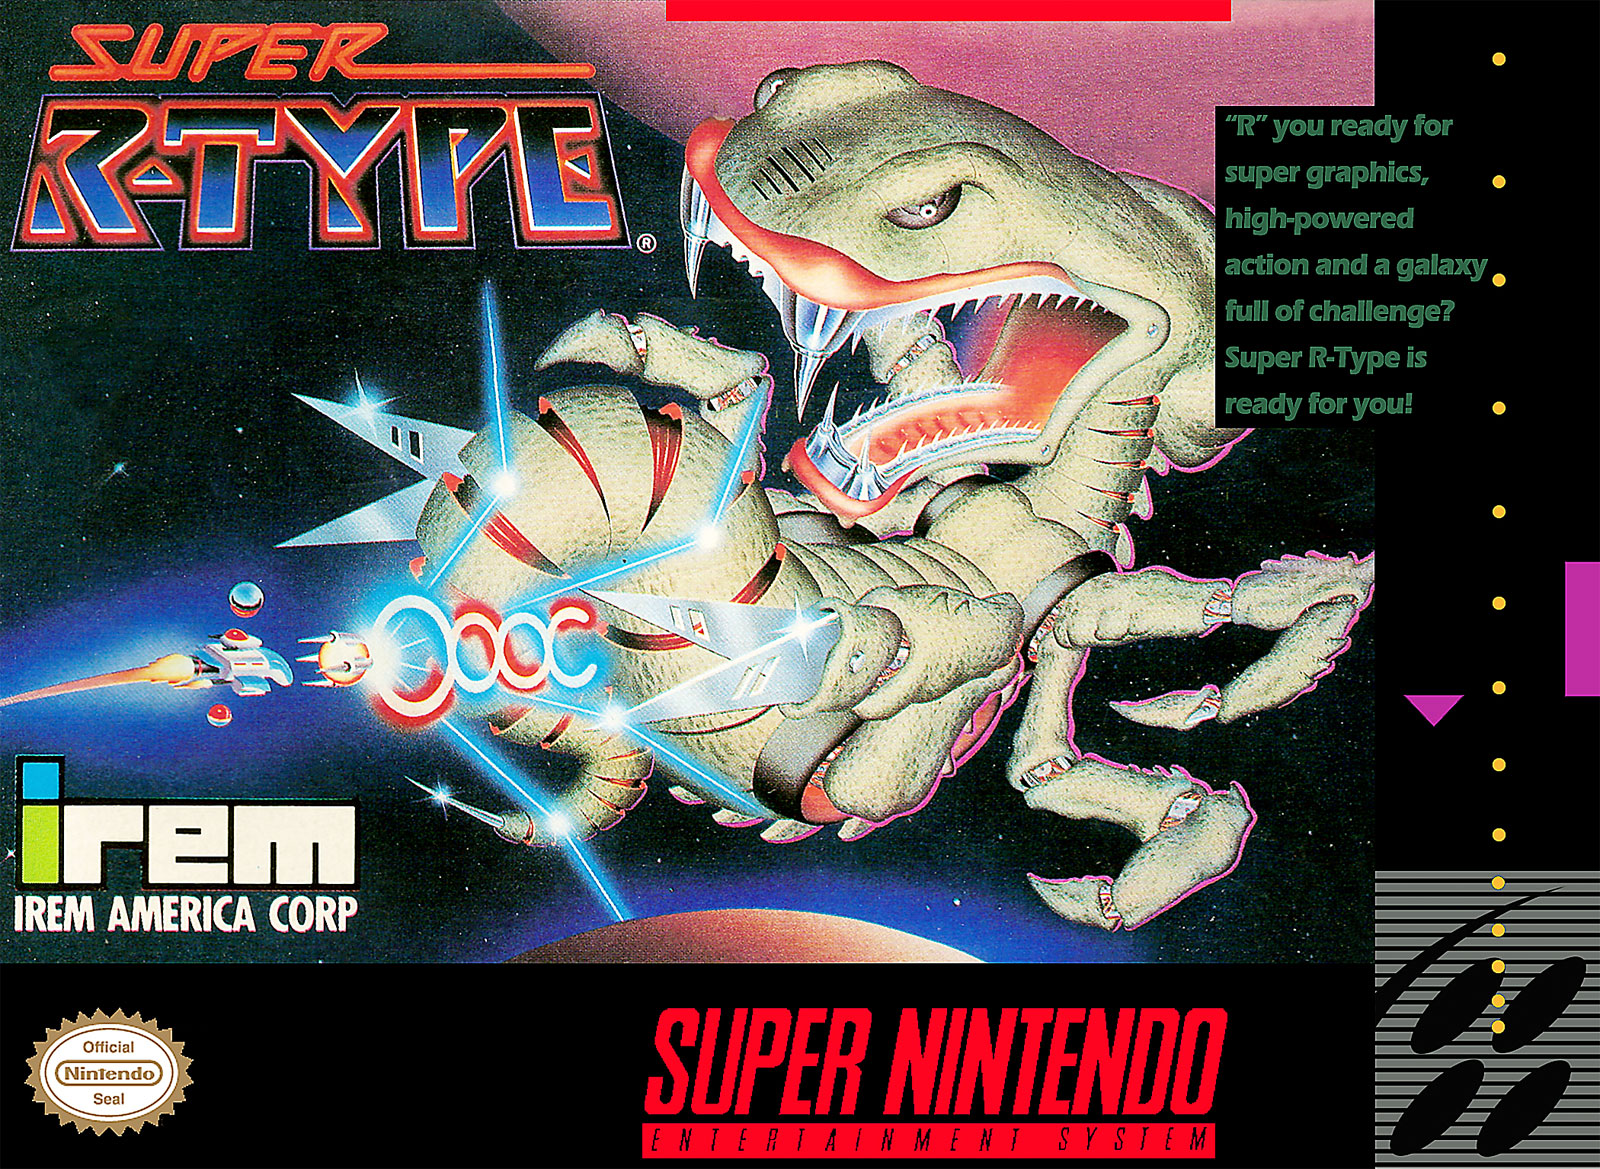 Super R-Type by Irem for SNES